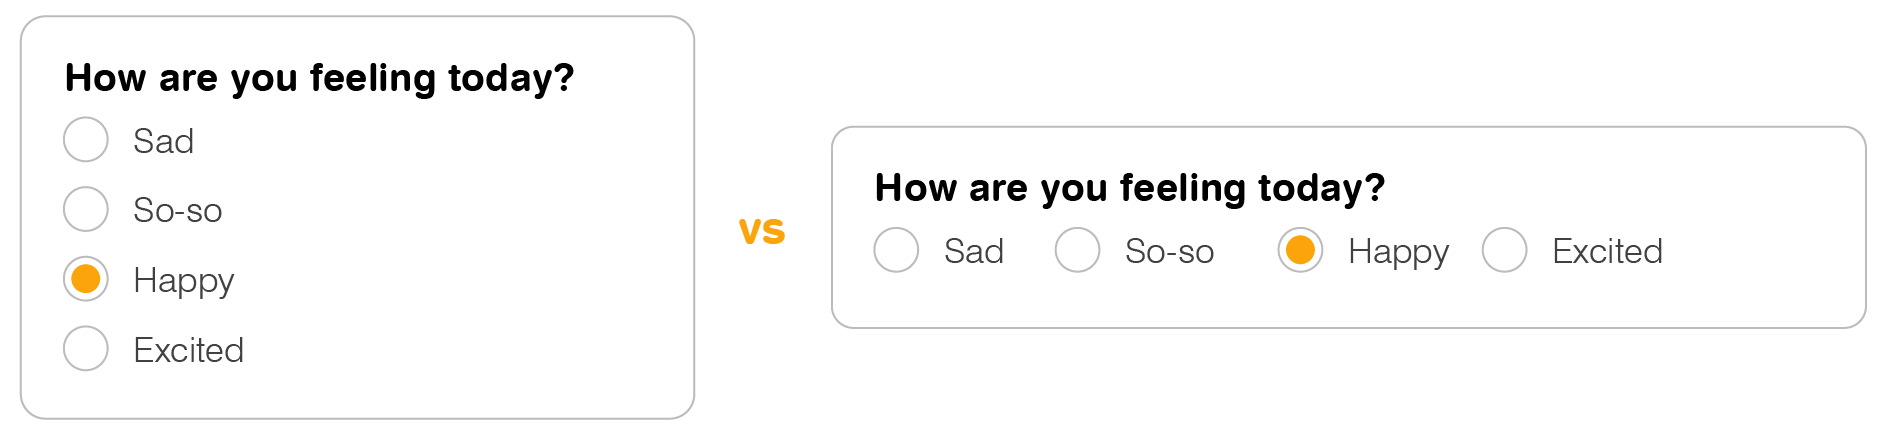 Vertically-stacked radio buttons vs side-by-side layout for radio buttons